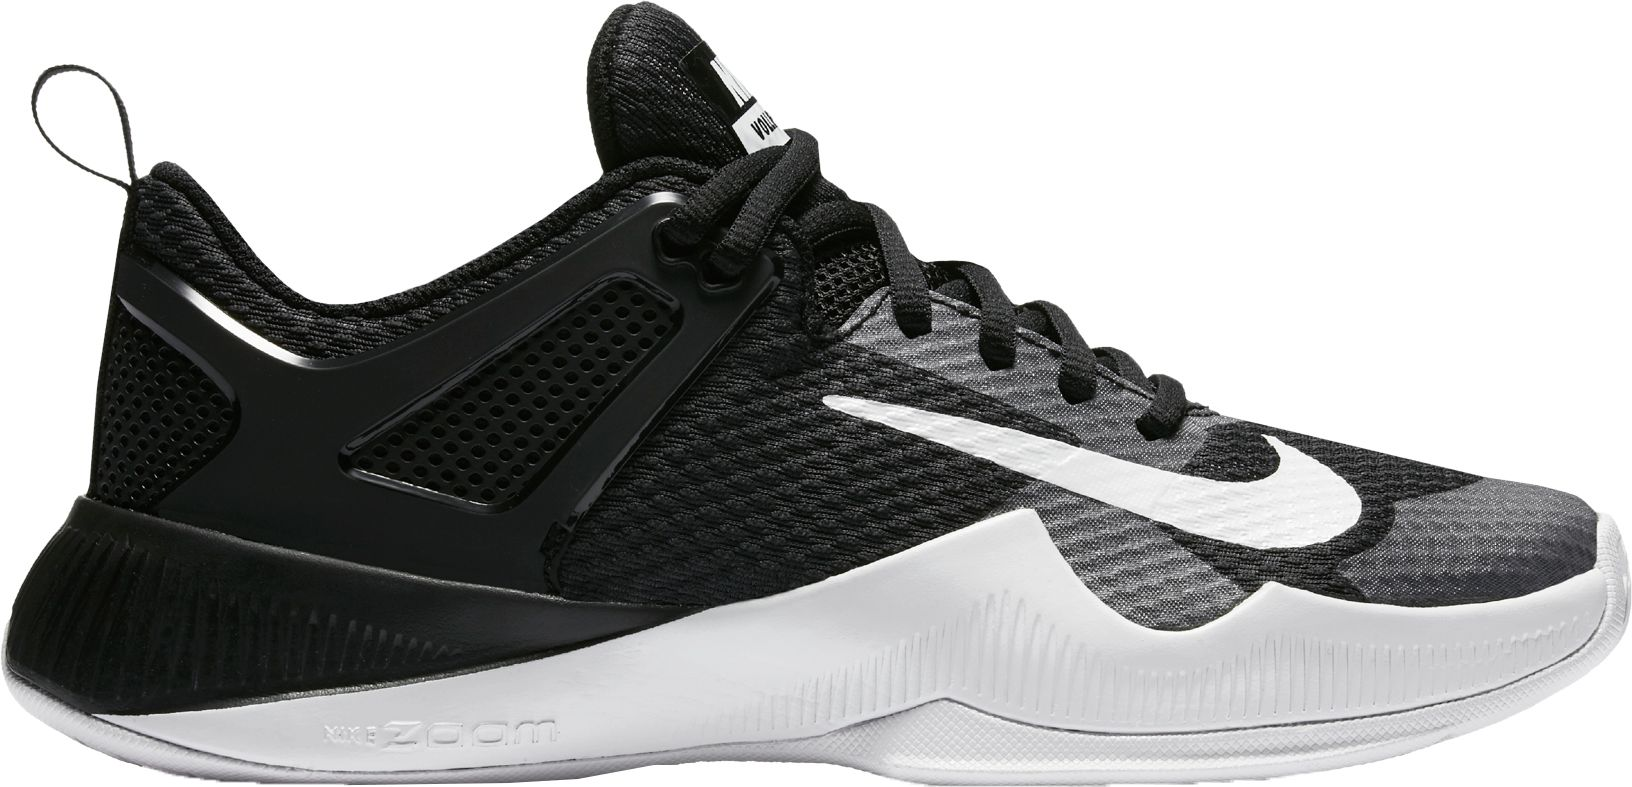 Kobe Volleyball Shoes Womens